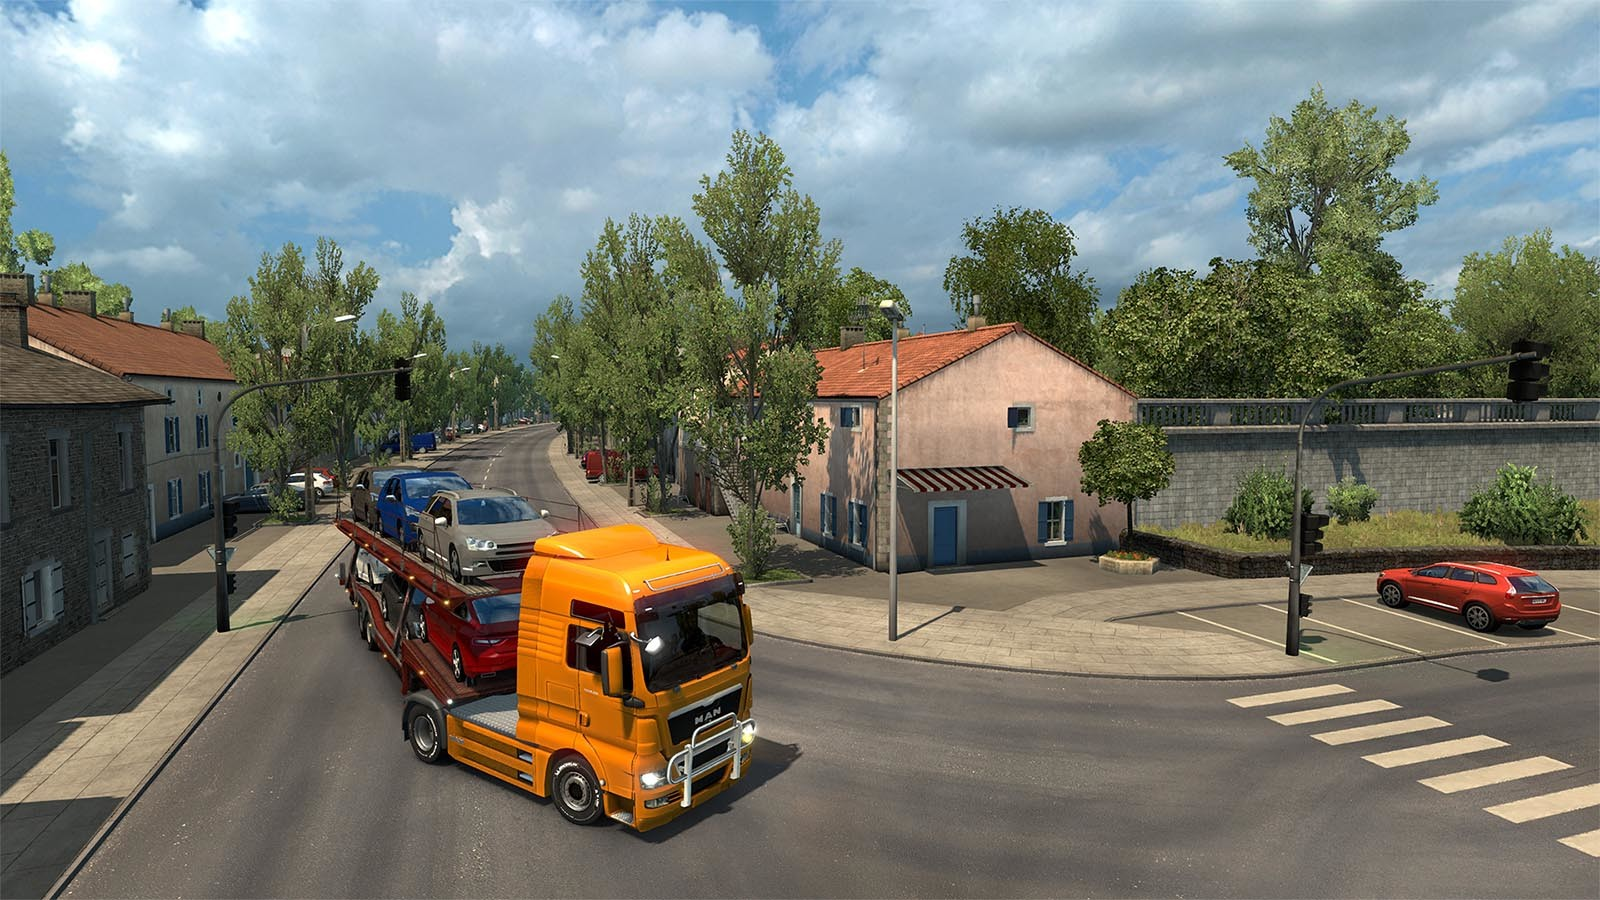 Euro Truck Simulator 2: Vive la France! [Steam CD Key] for PC - Buy now